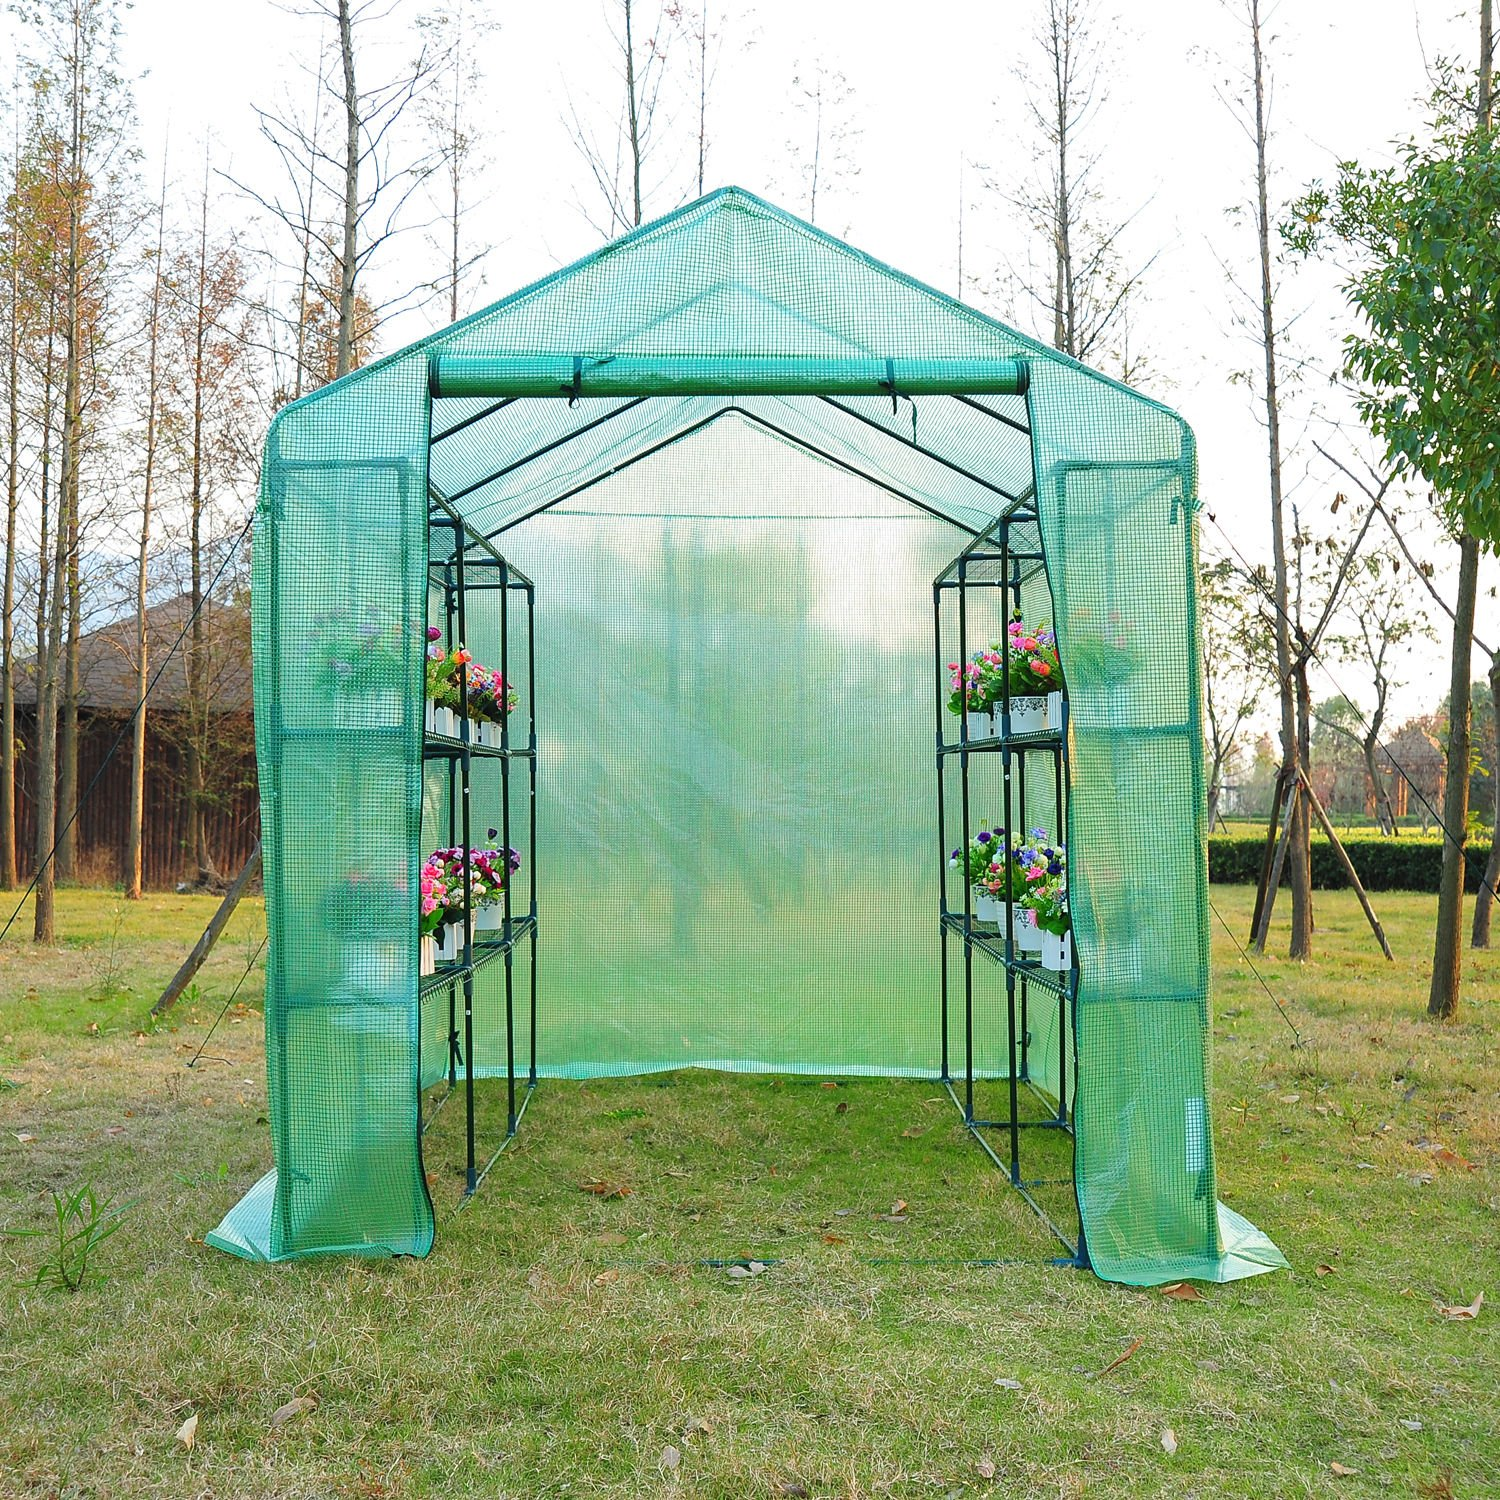 Outsunny 8' x 6' x 7' Outdoor Portable Walk-in Greenhouse by Outsunny (Image #4)